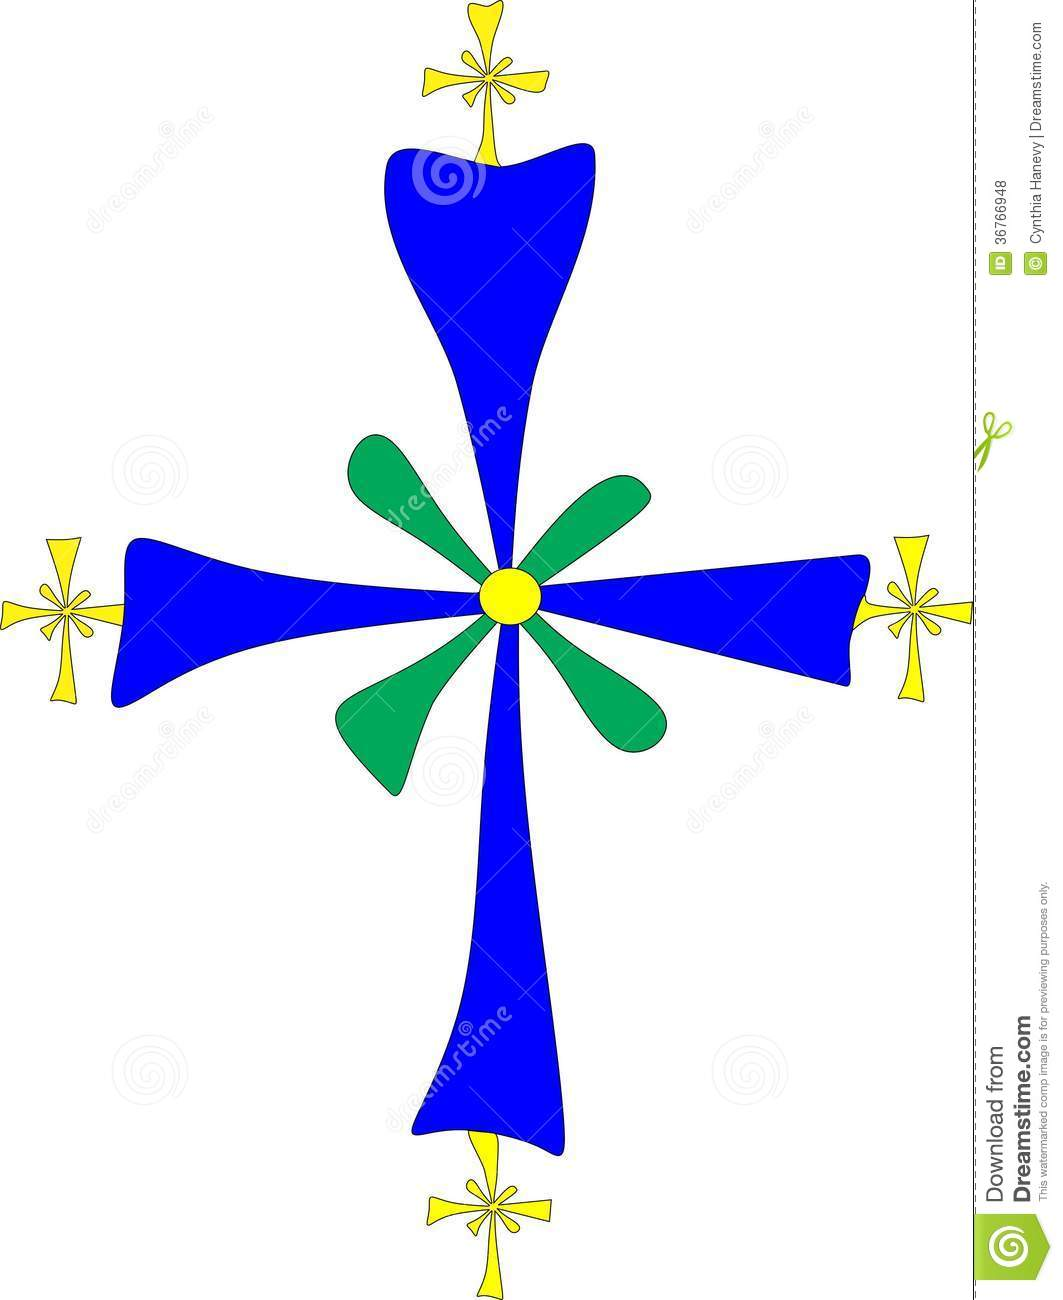 Christian Symbol: Coptic Cross Royalty Free Stock Photos.